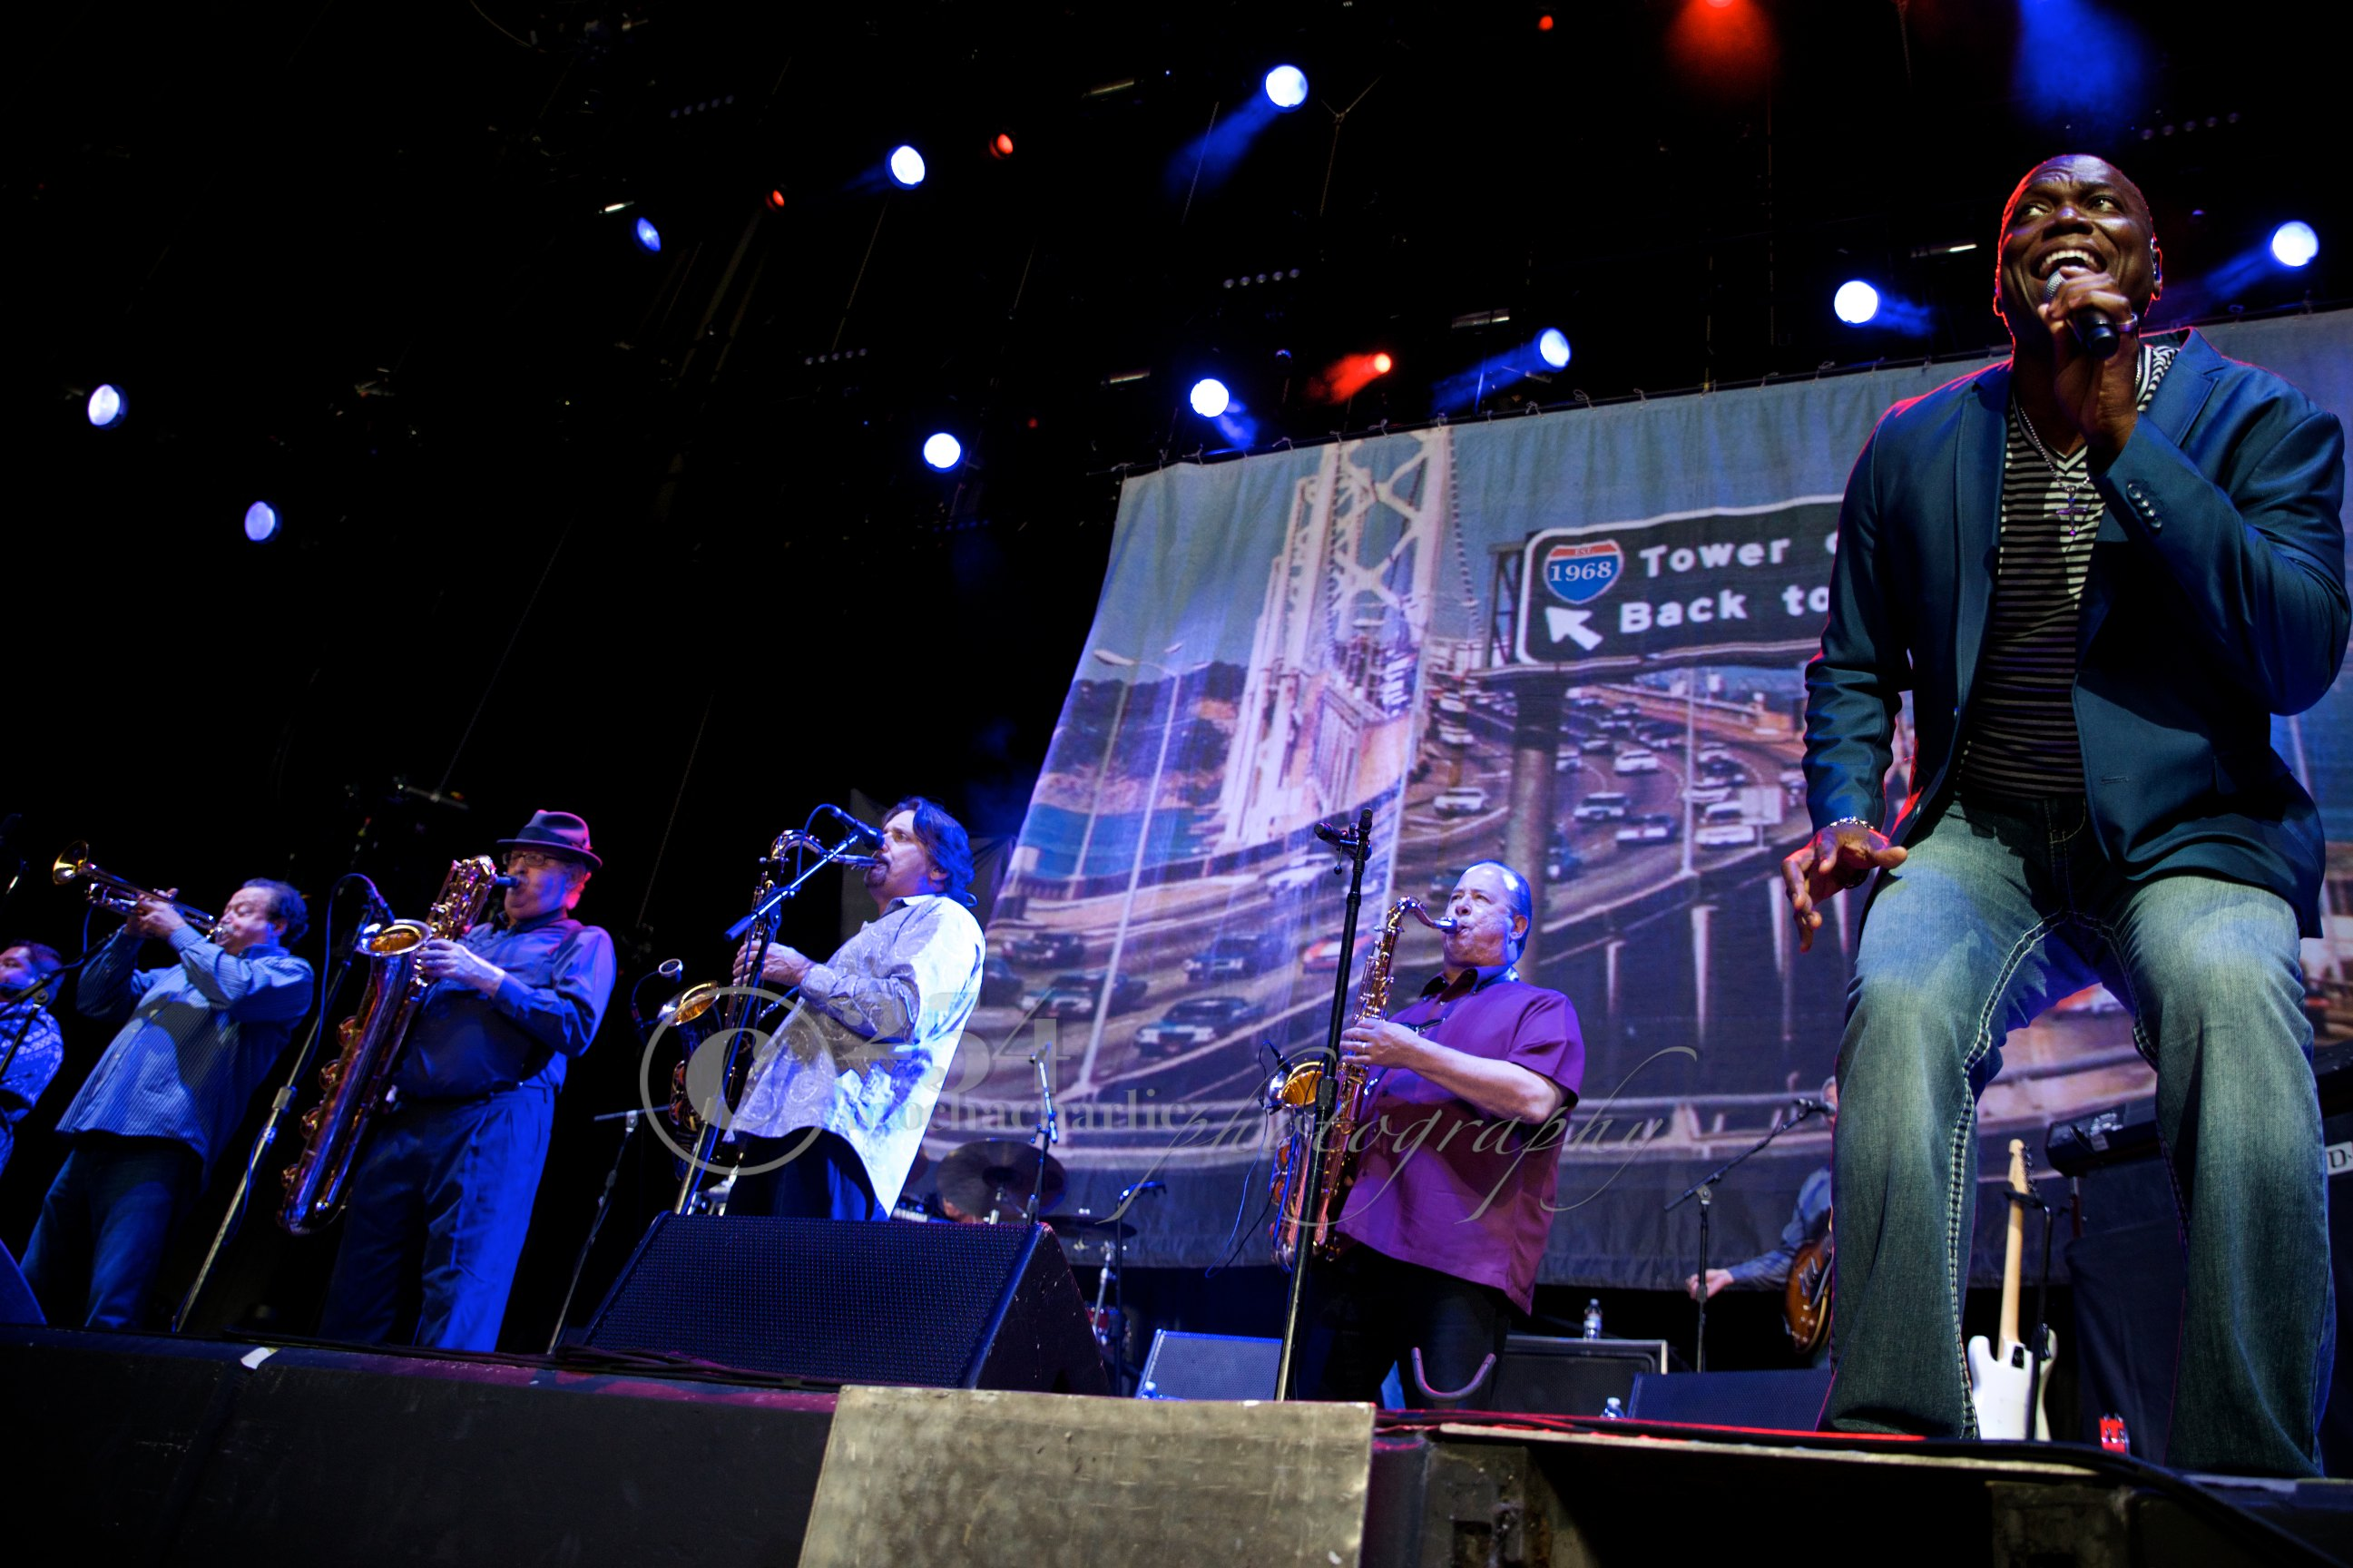 Tower of Power at White River Ampitheater (Photo by Mocha Charlie)